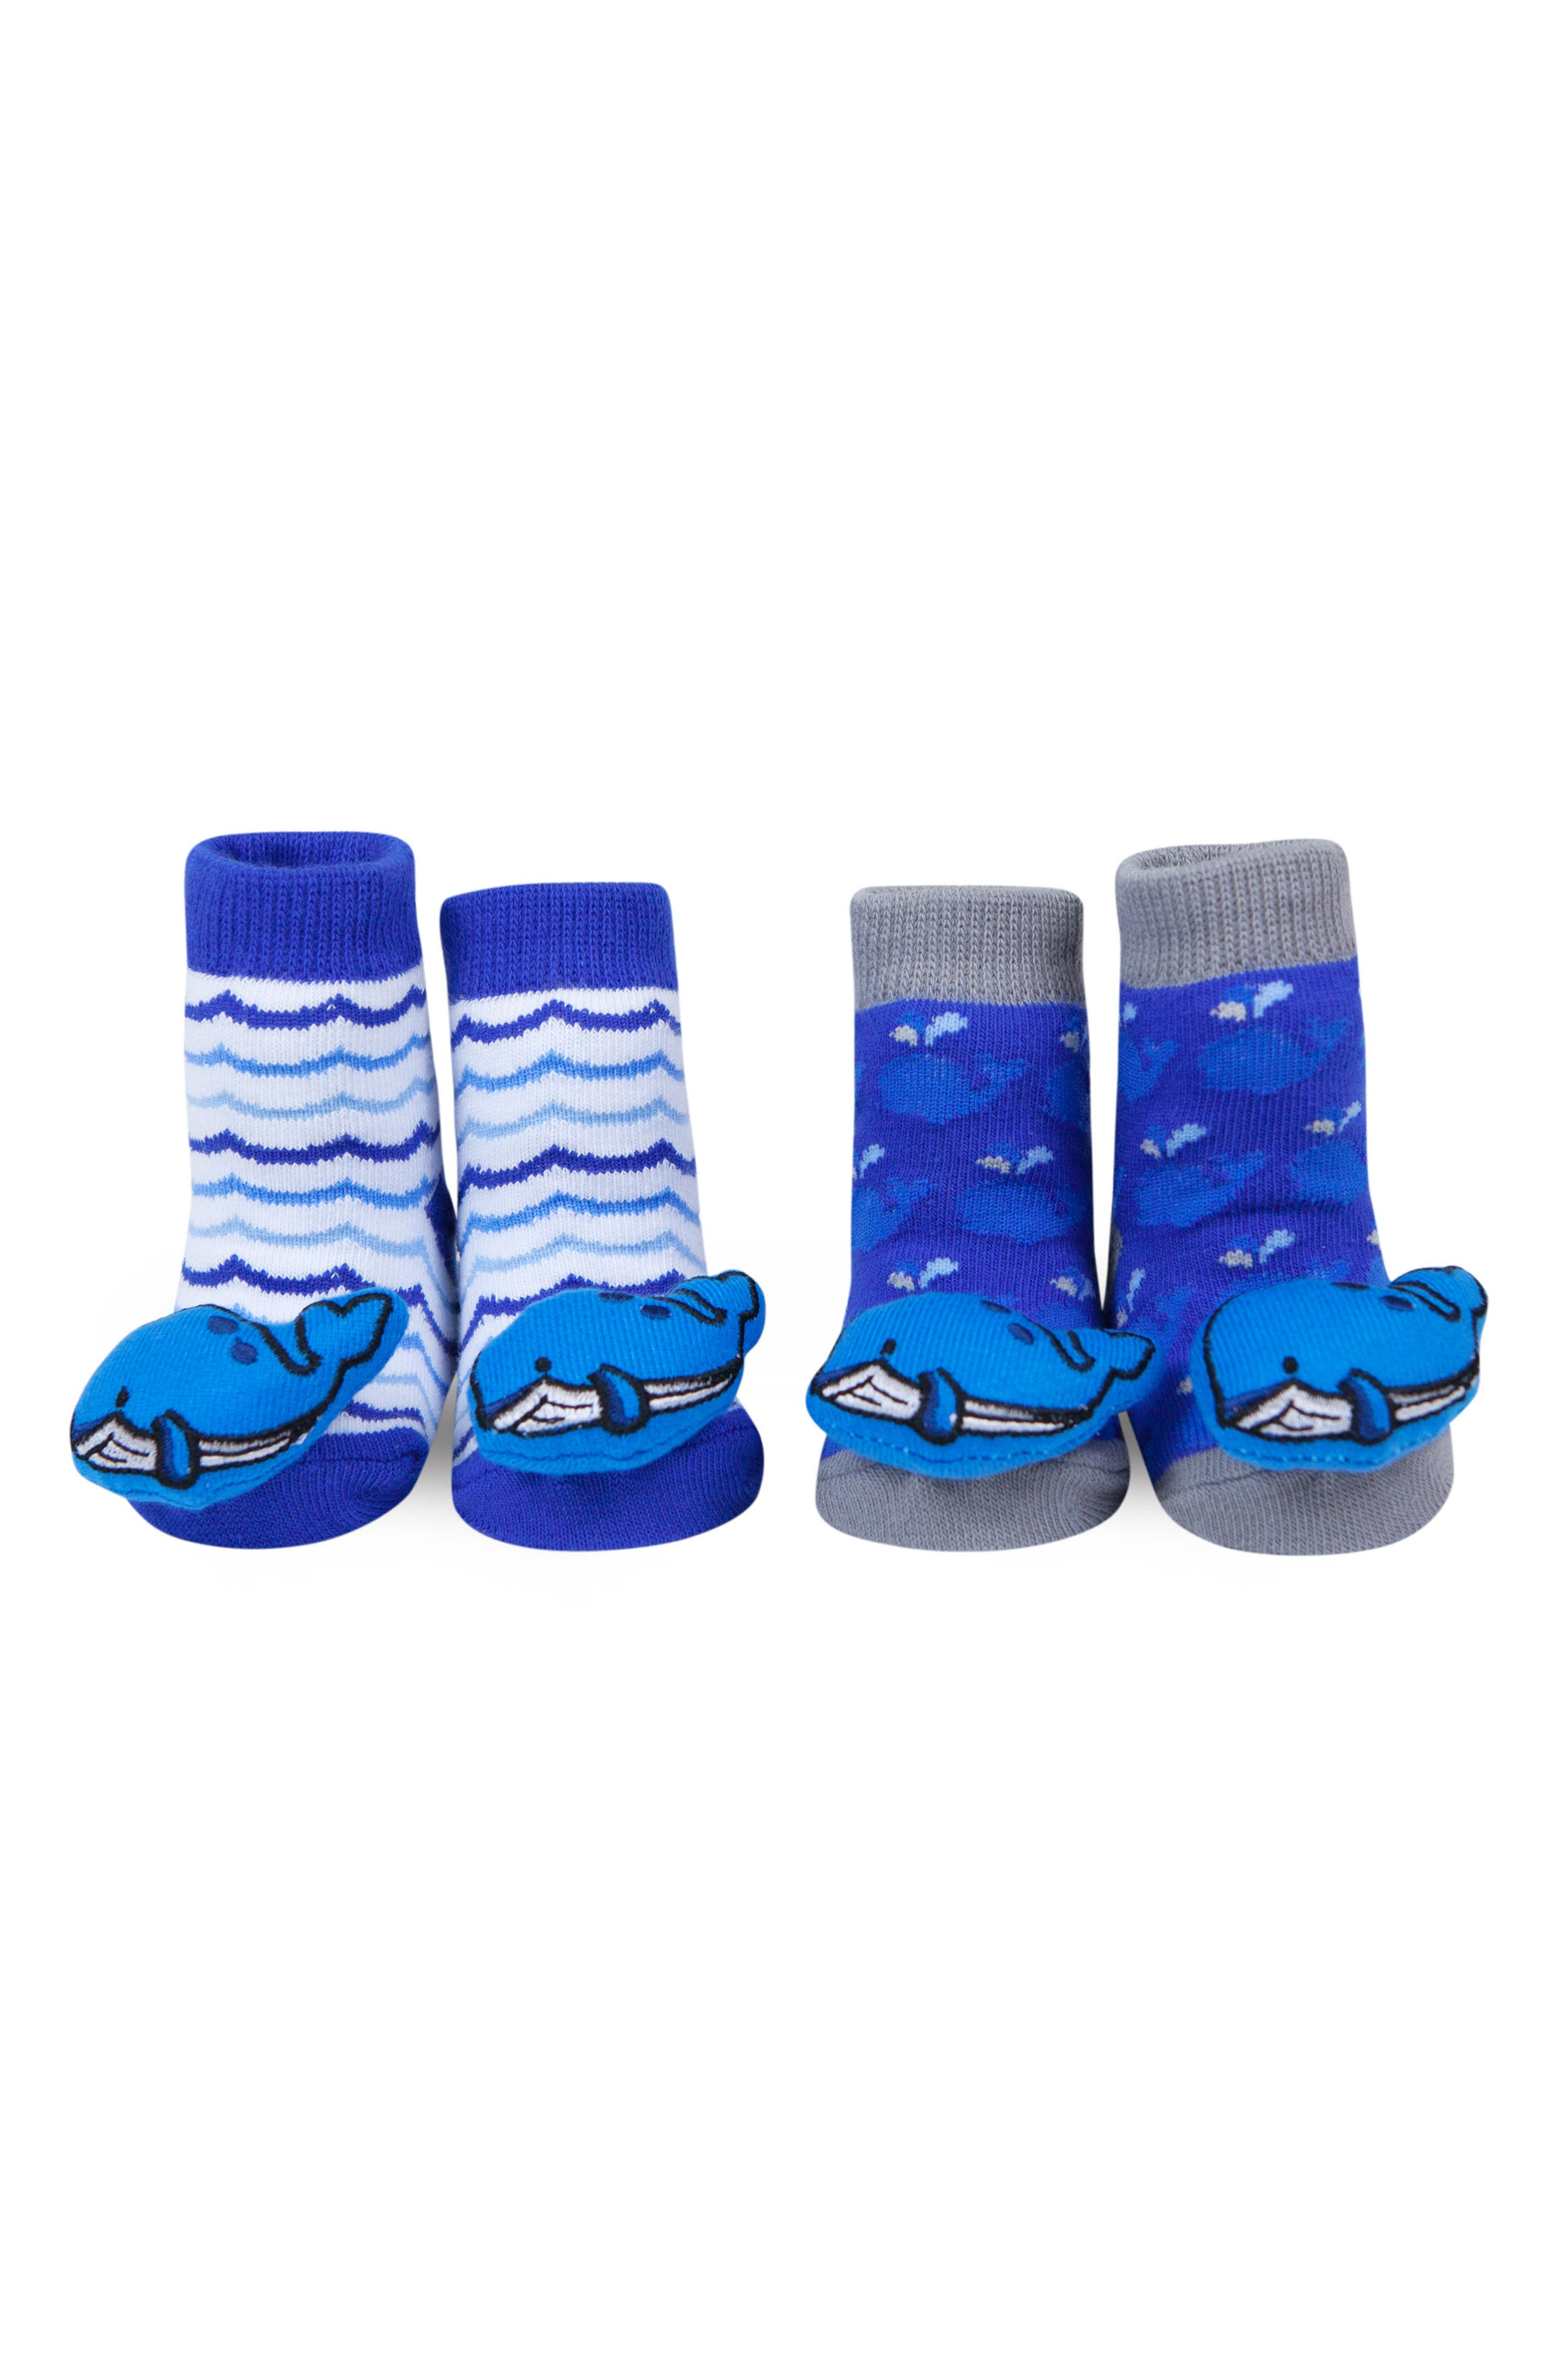 & Friends Whales 2-Pack Rattle Socks,                         Main,                         color, 424